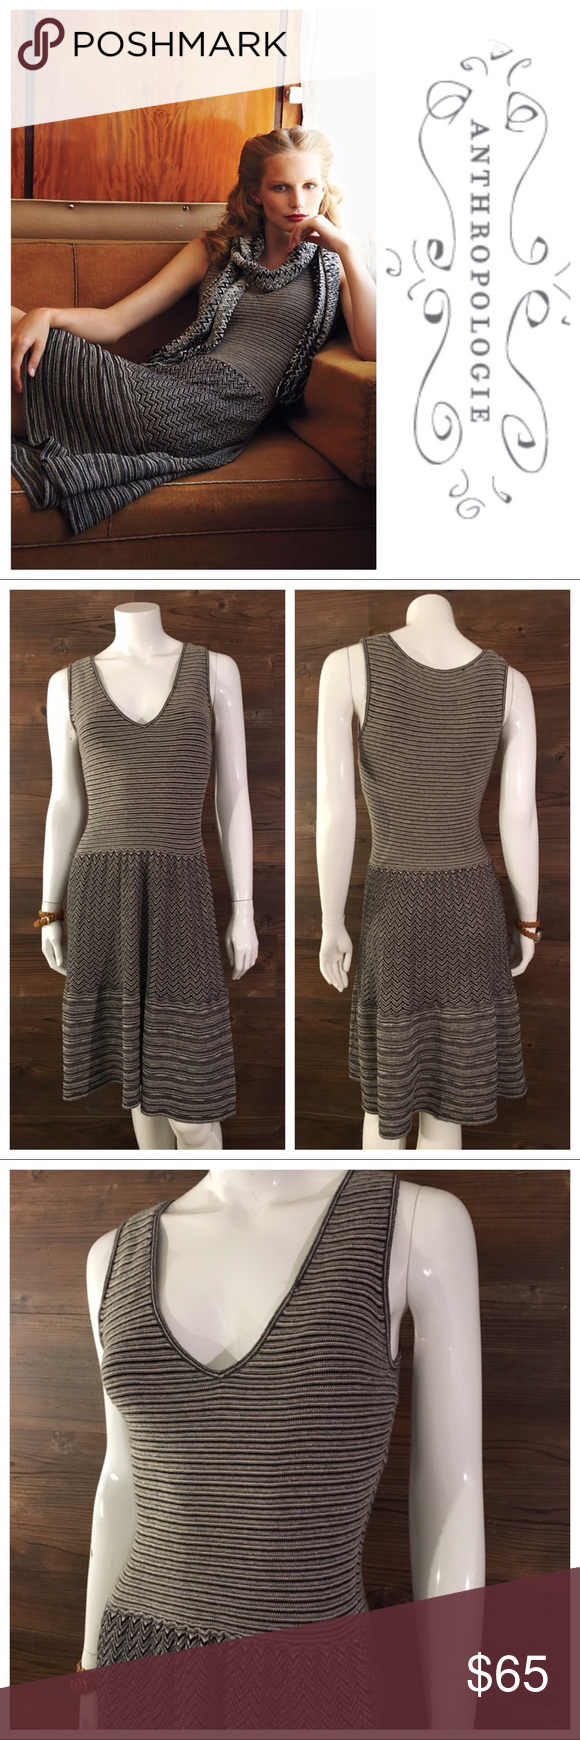 3dbb4ad214946 Knitted & Knotted Test Pattern Sweater Dress Layered and lined with layers  of lines, this